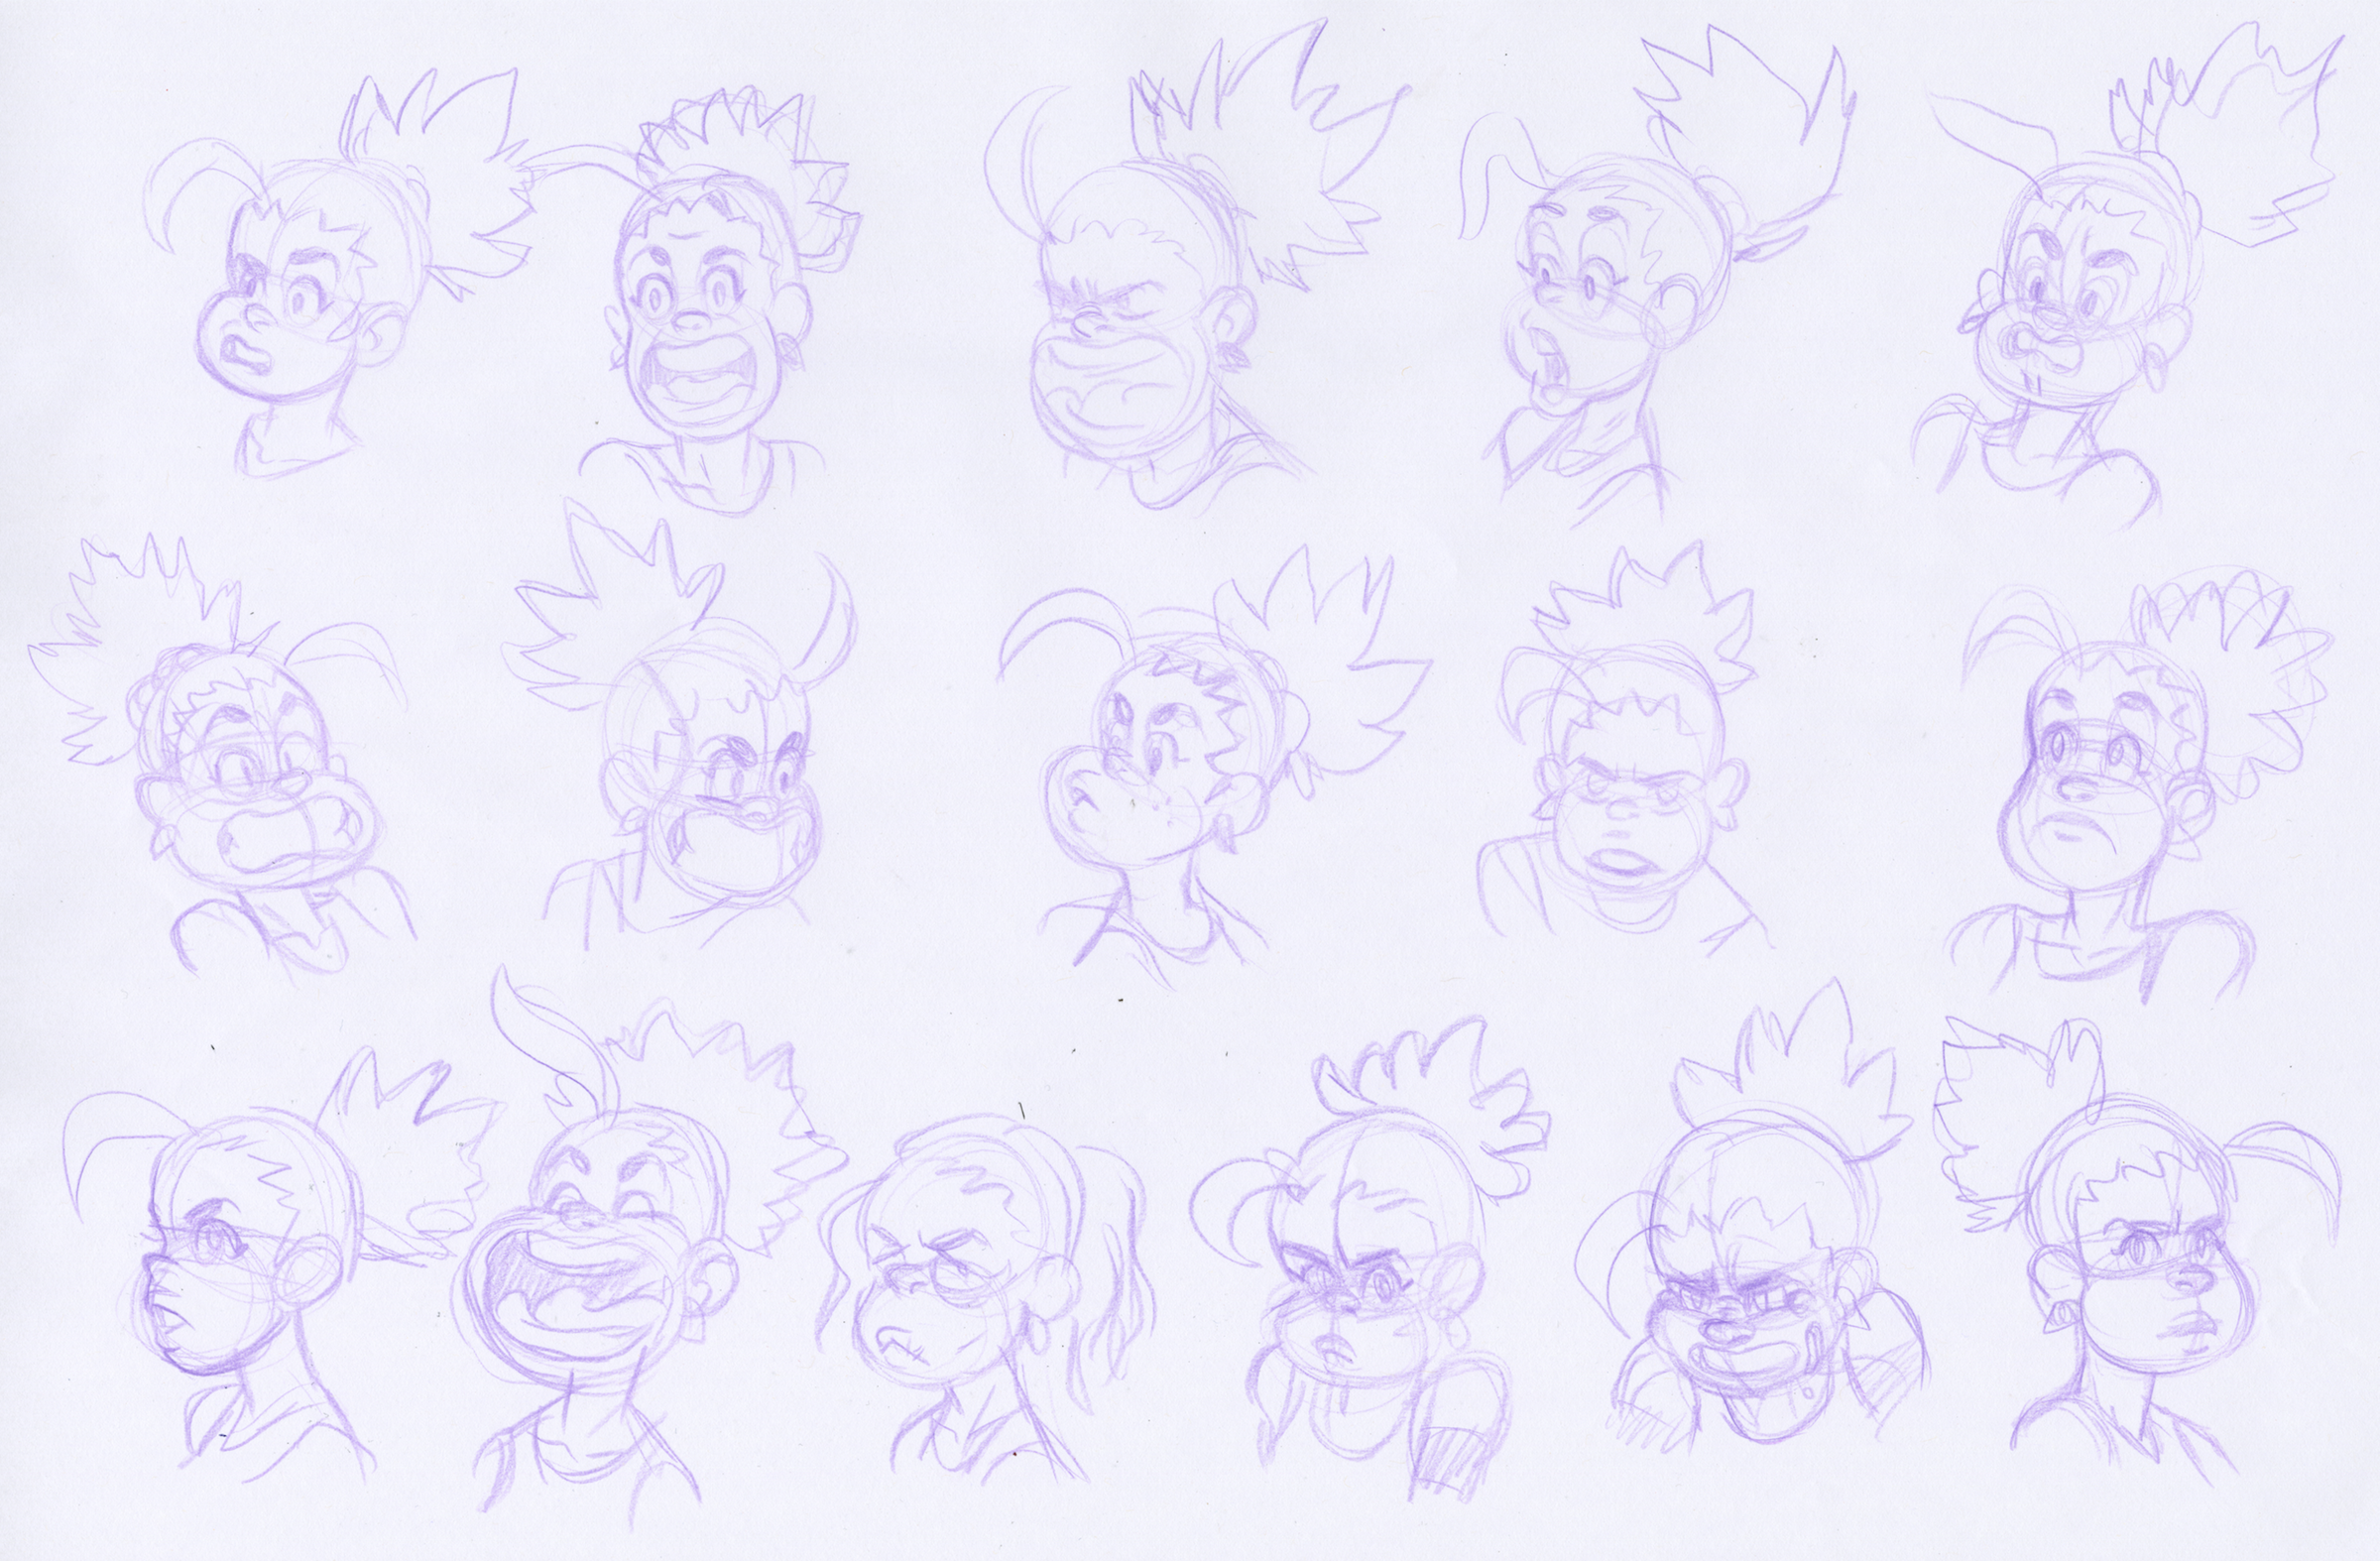 hank expressions 2.png